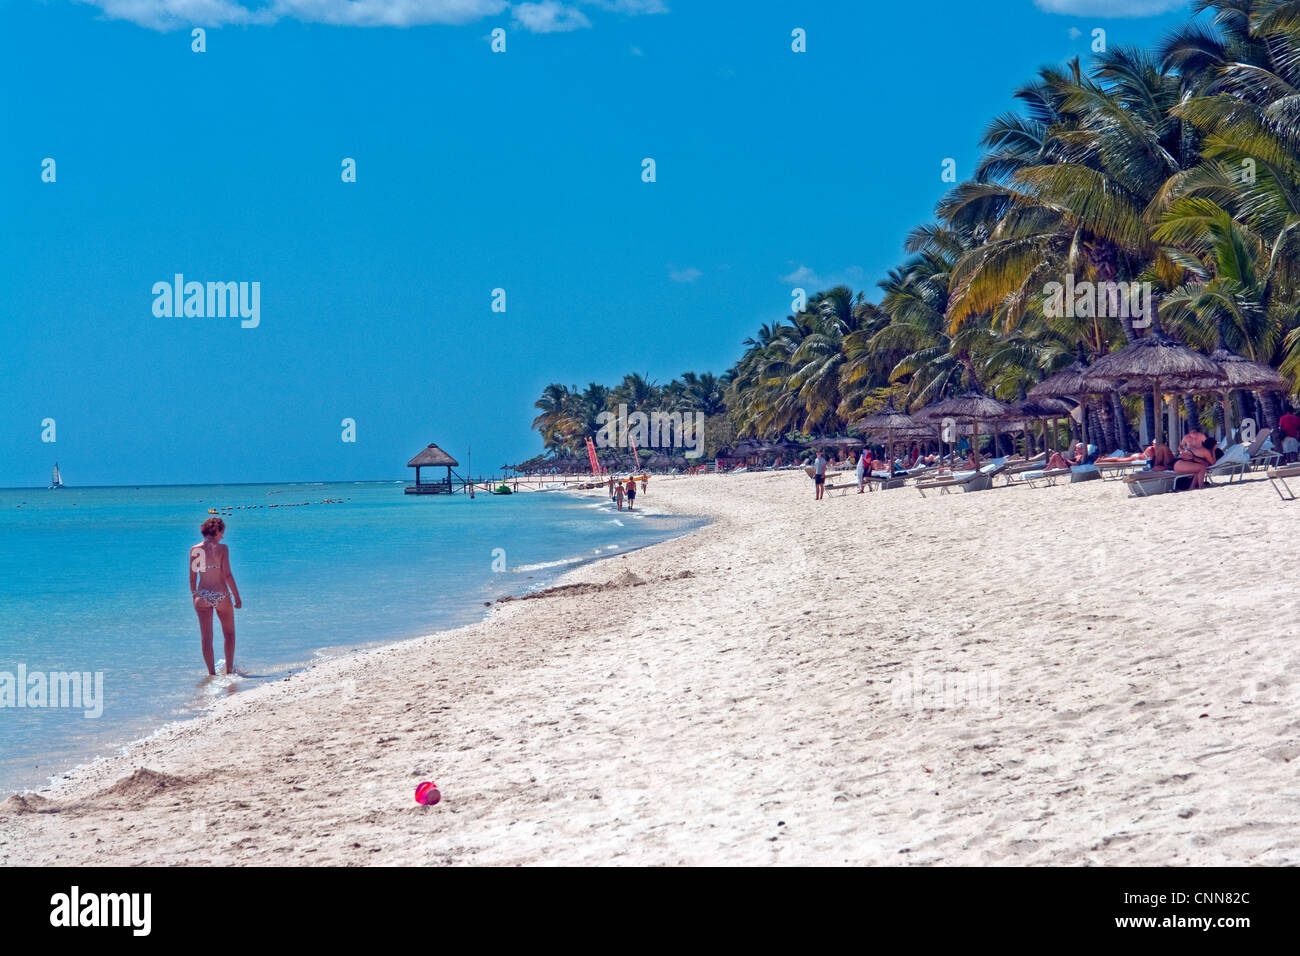 The beach in front of La Pirogue Hotel, at Wolmar, just south of Flic en Flac on the West coast of Mauritius Stock Photo